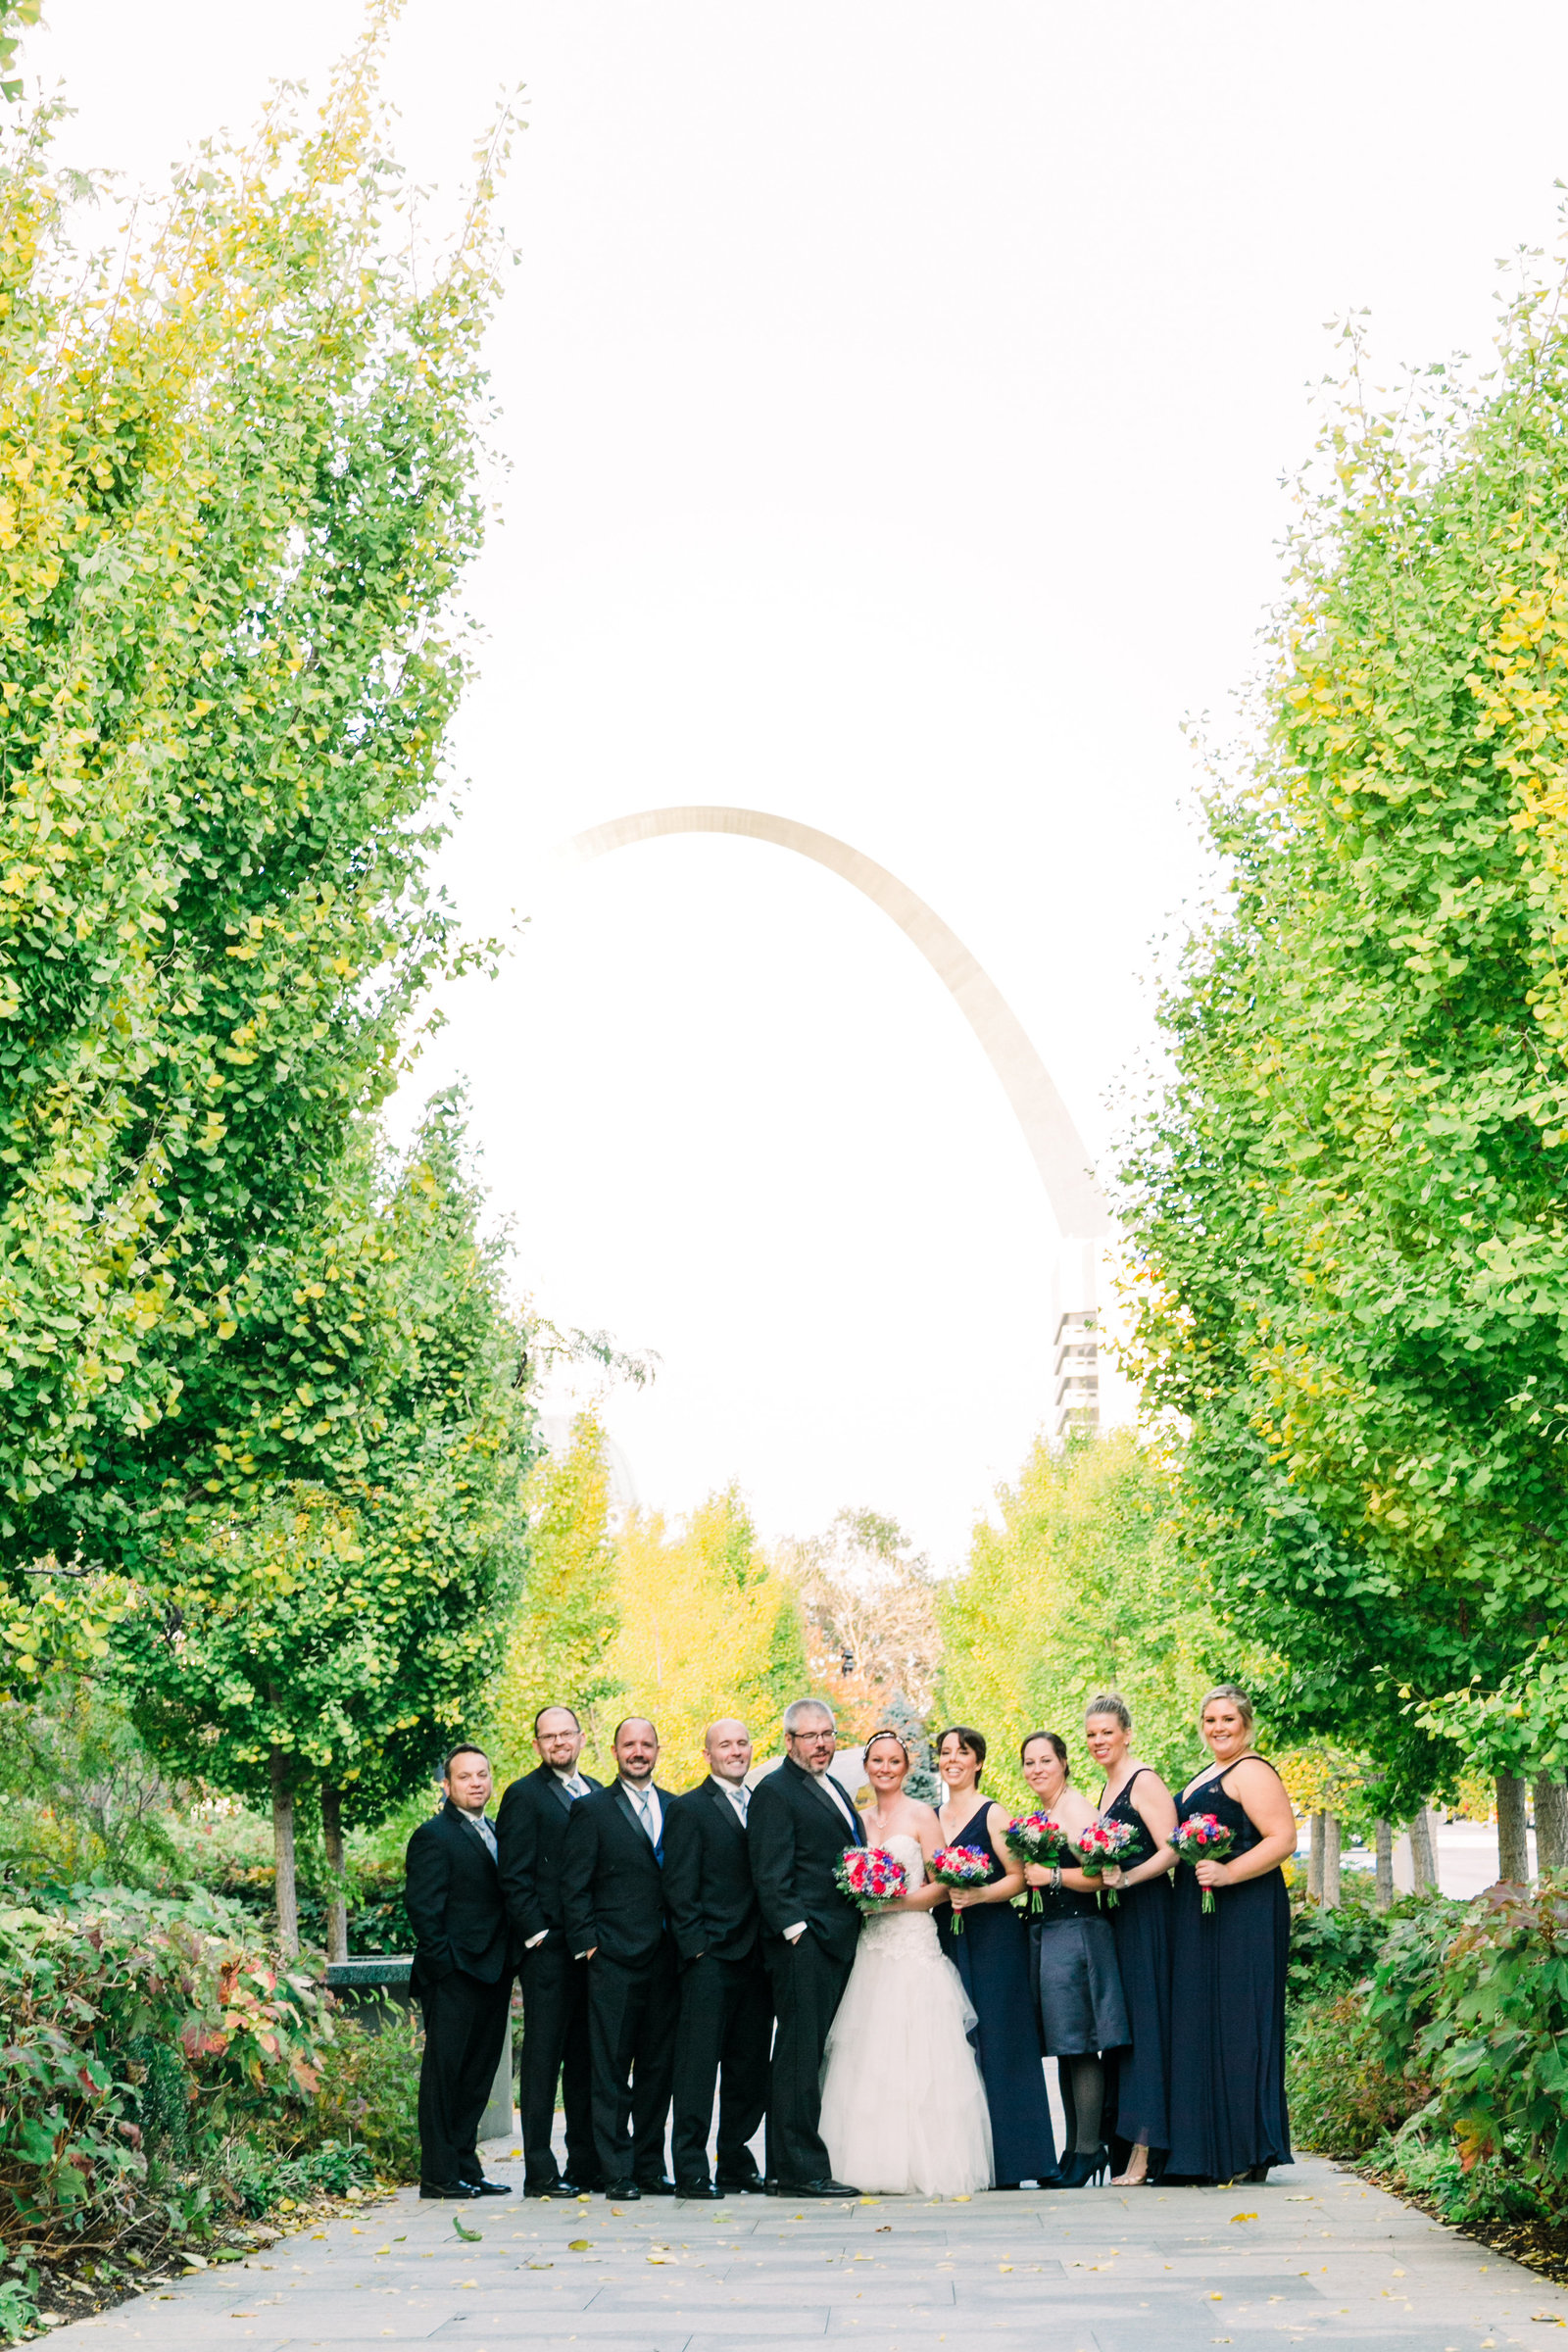 A Wedding party stands on a sidewalk in the St. Louis City Garden with the historic arch in the background